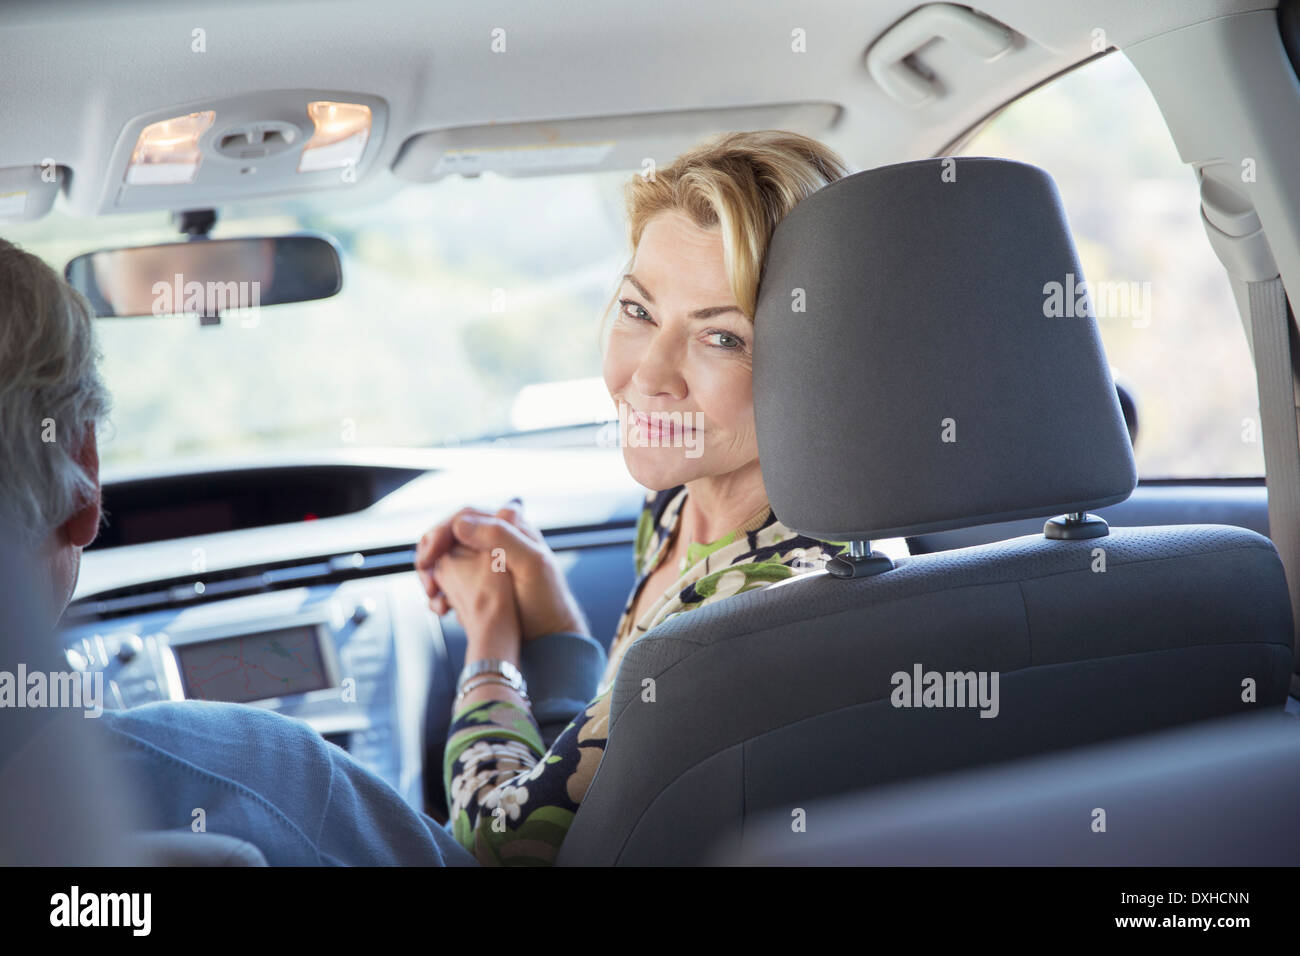 Portrait of smiling woman inside car - Stock Image